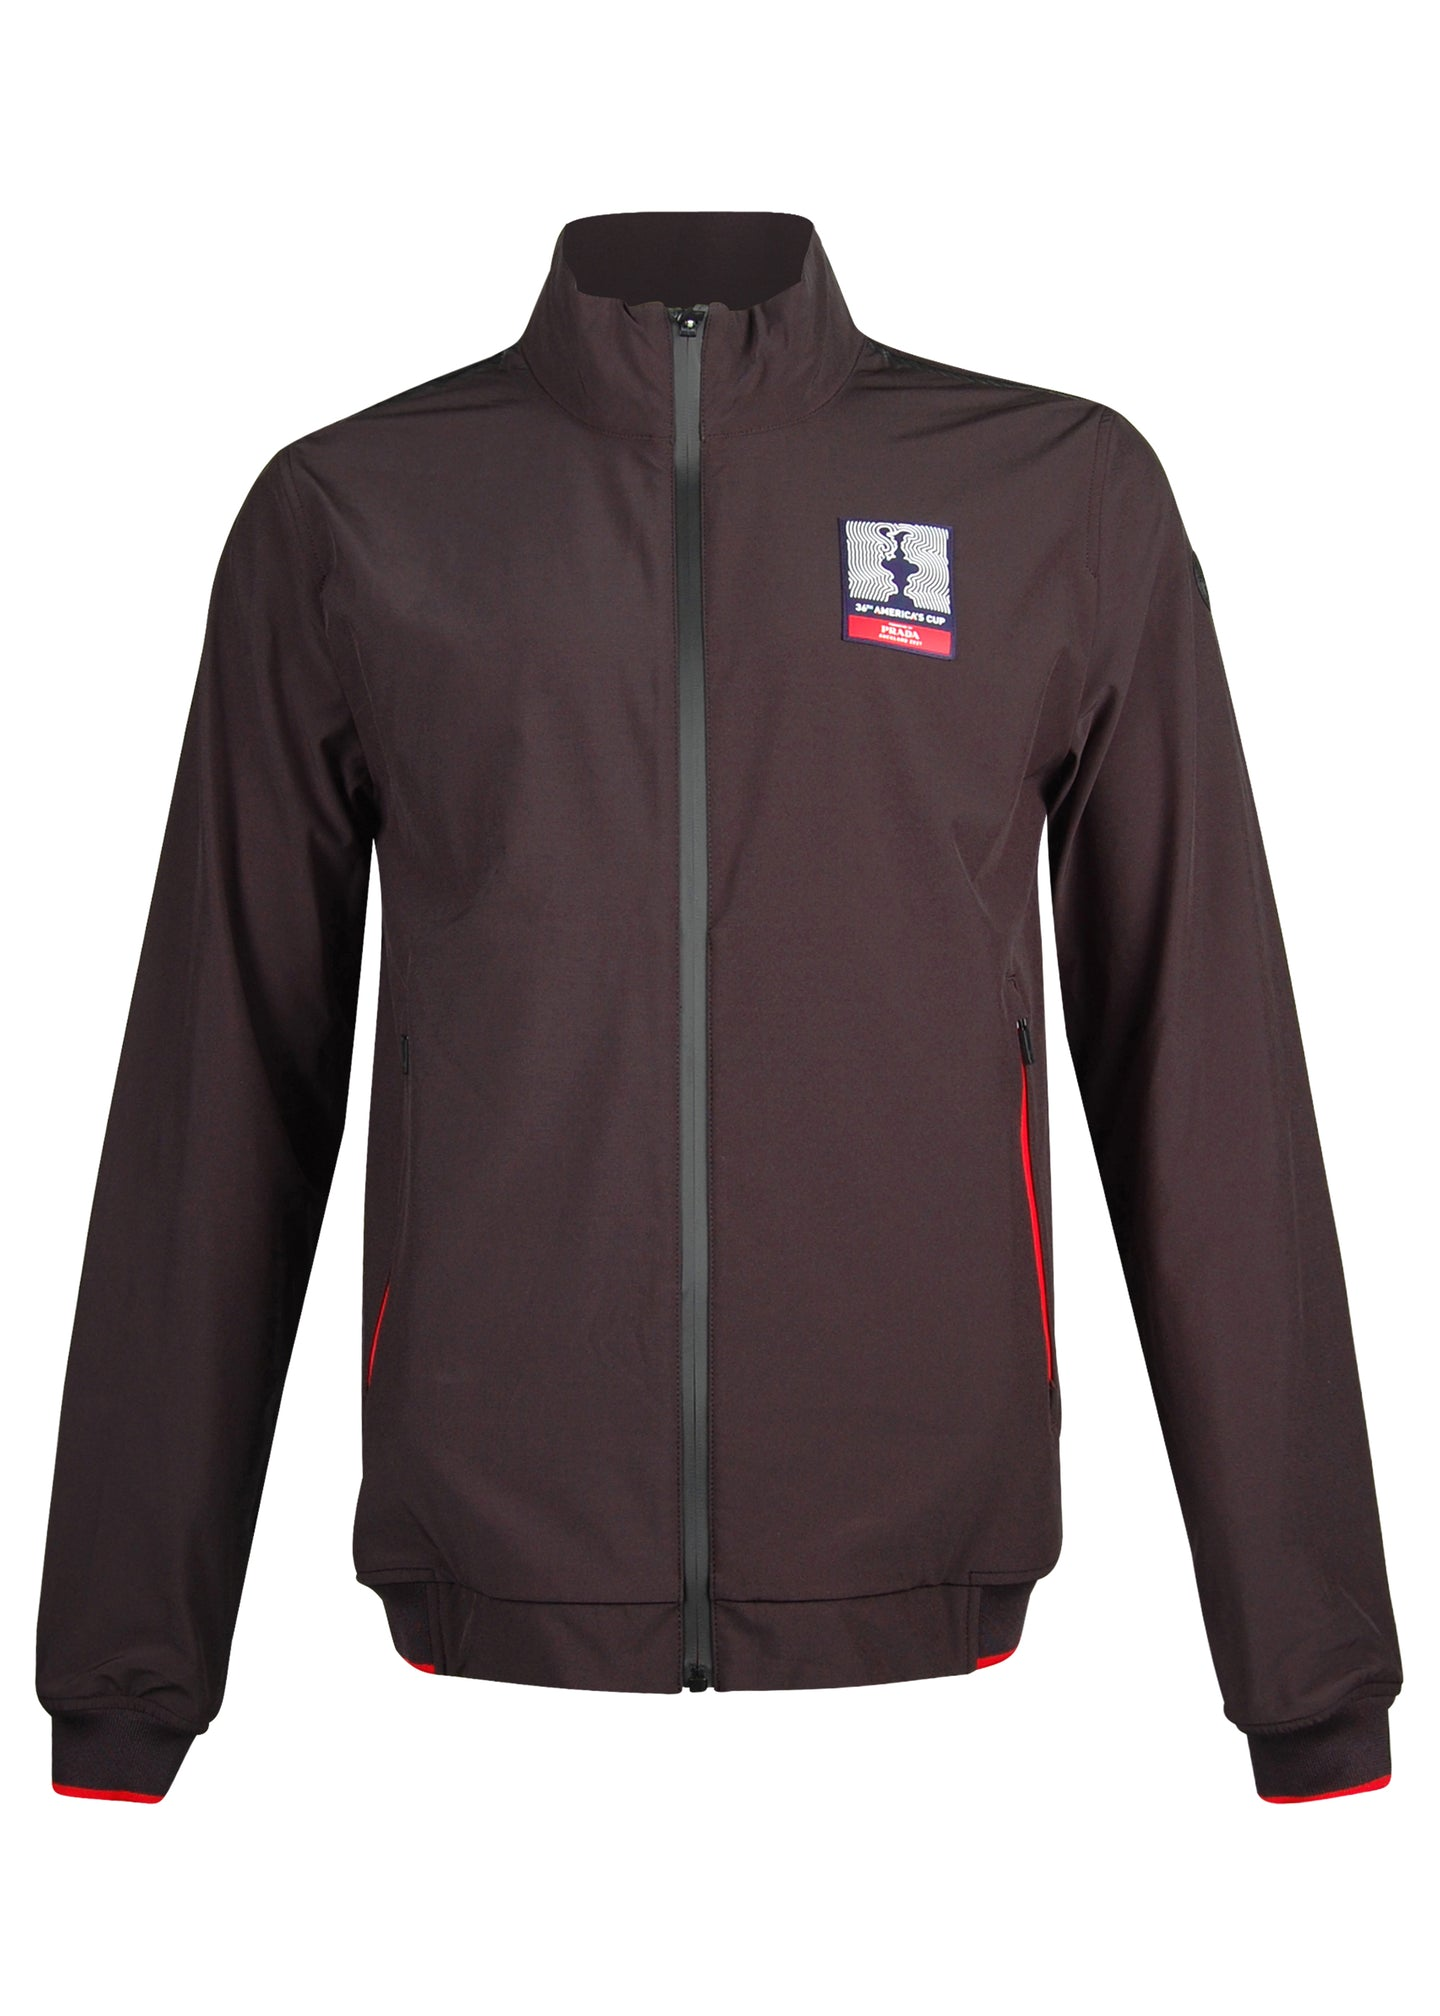 Prada X North Sails - Exclusive 36th America's Cup Collection Zip Through Carbon Detail Jacket - 099535 - Black Red